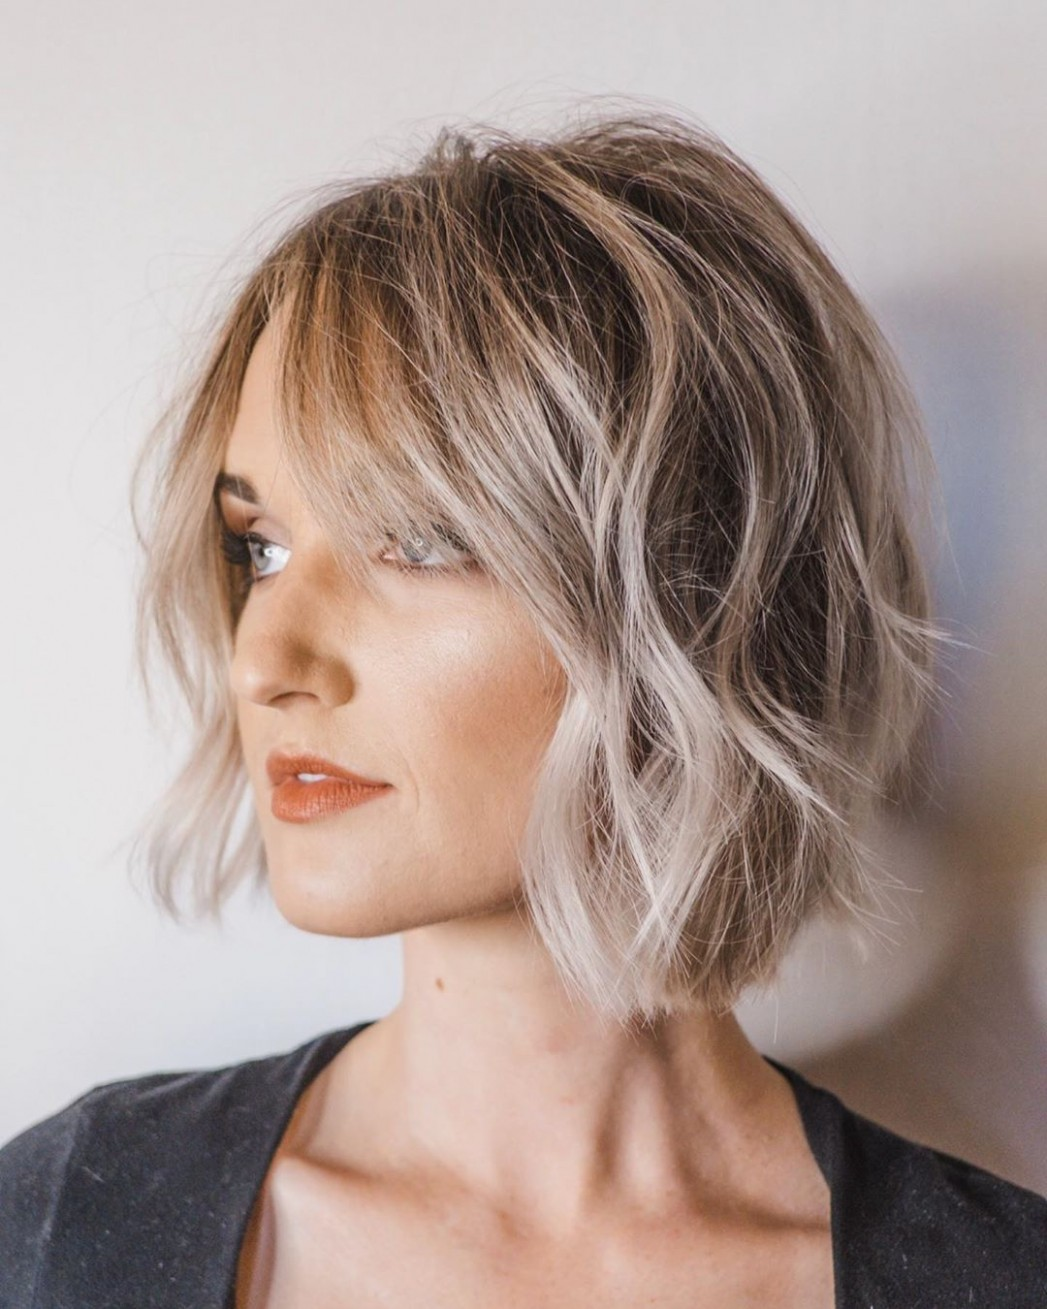 12 Manageable Trendy Bob Haircuts for Women - Short Hairstyle 12